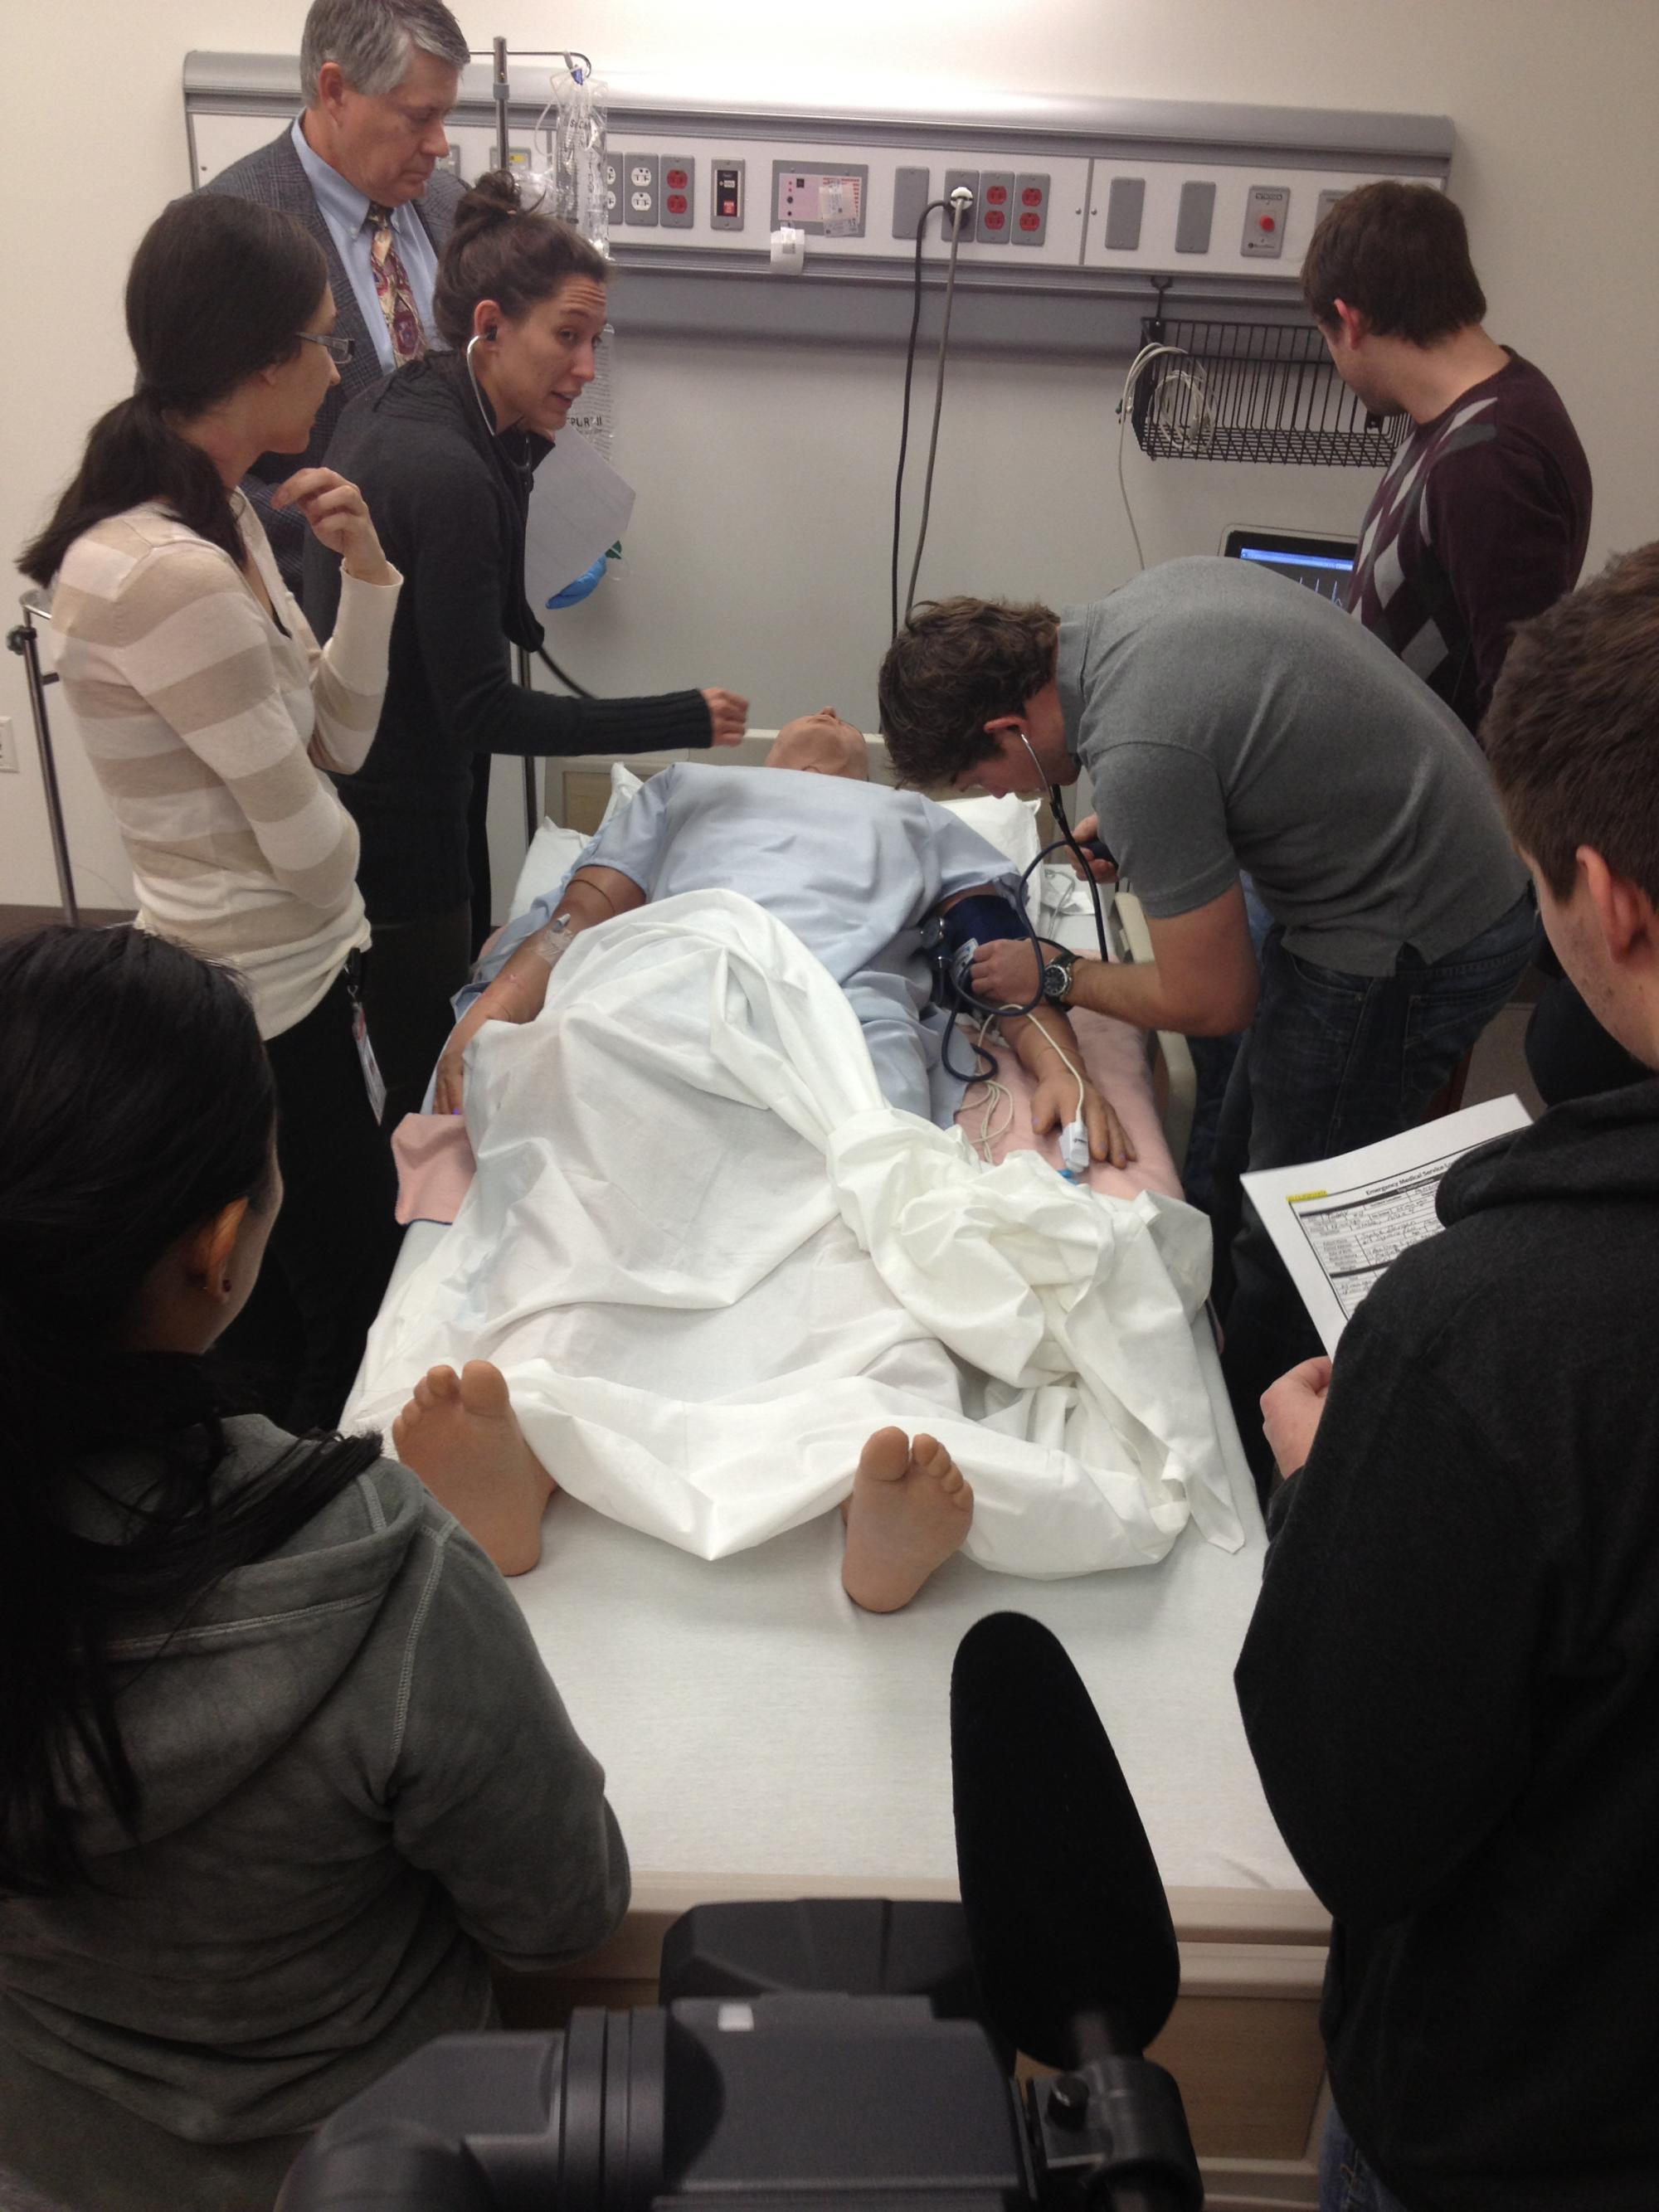 The simulation lab is an integral step in preparing students for the medical field.